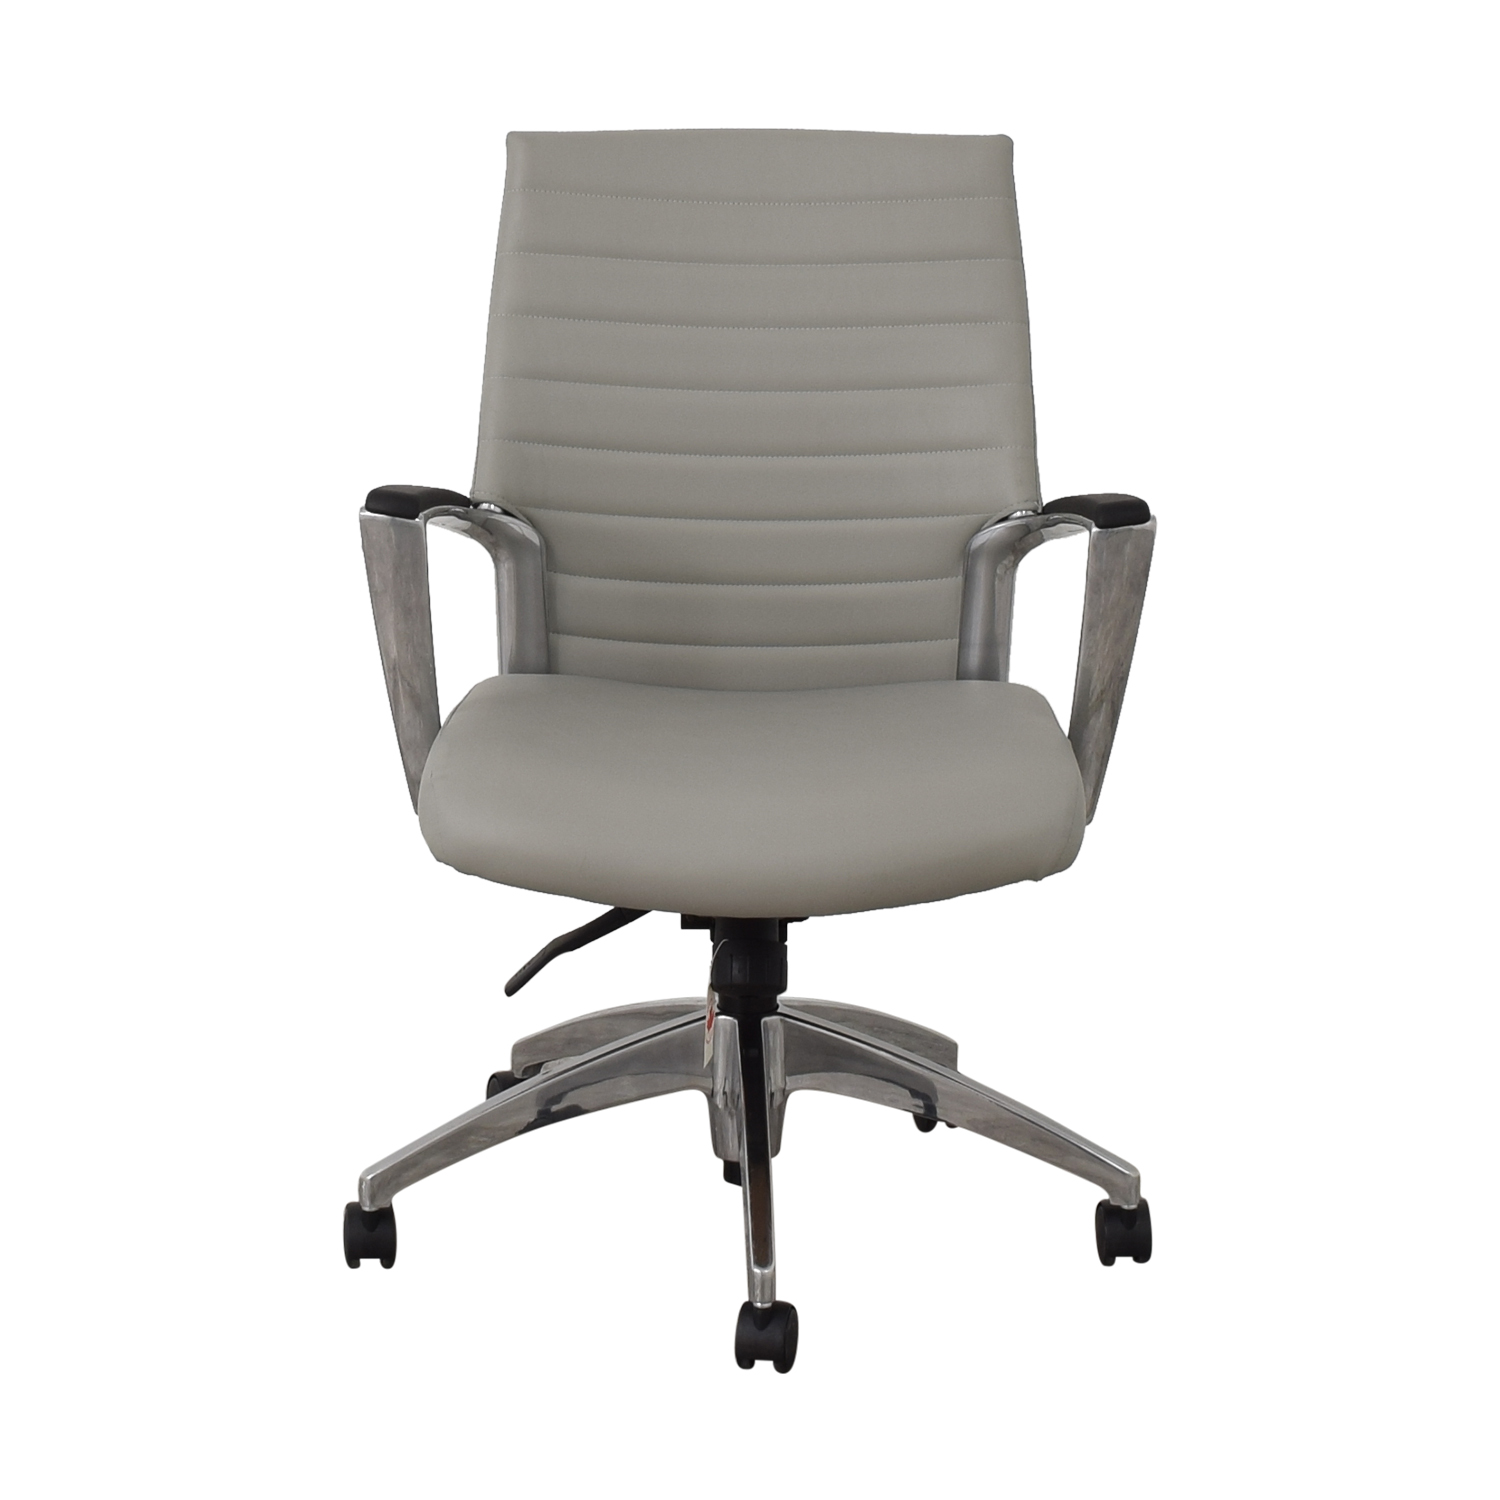 Global Global Accord Upholstered Medium Back Tilter Chair for sale